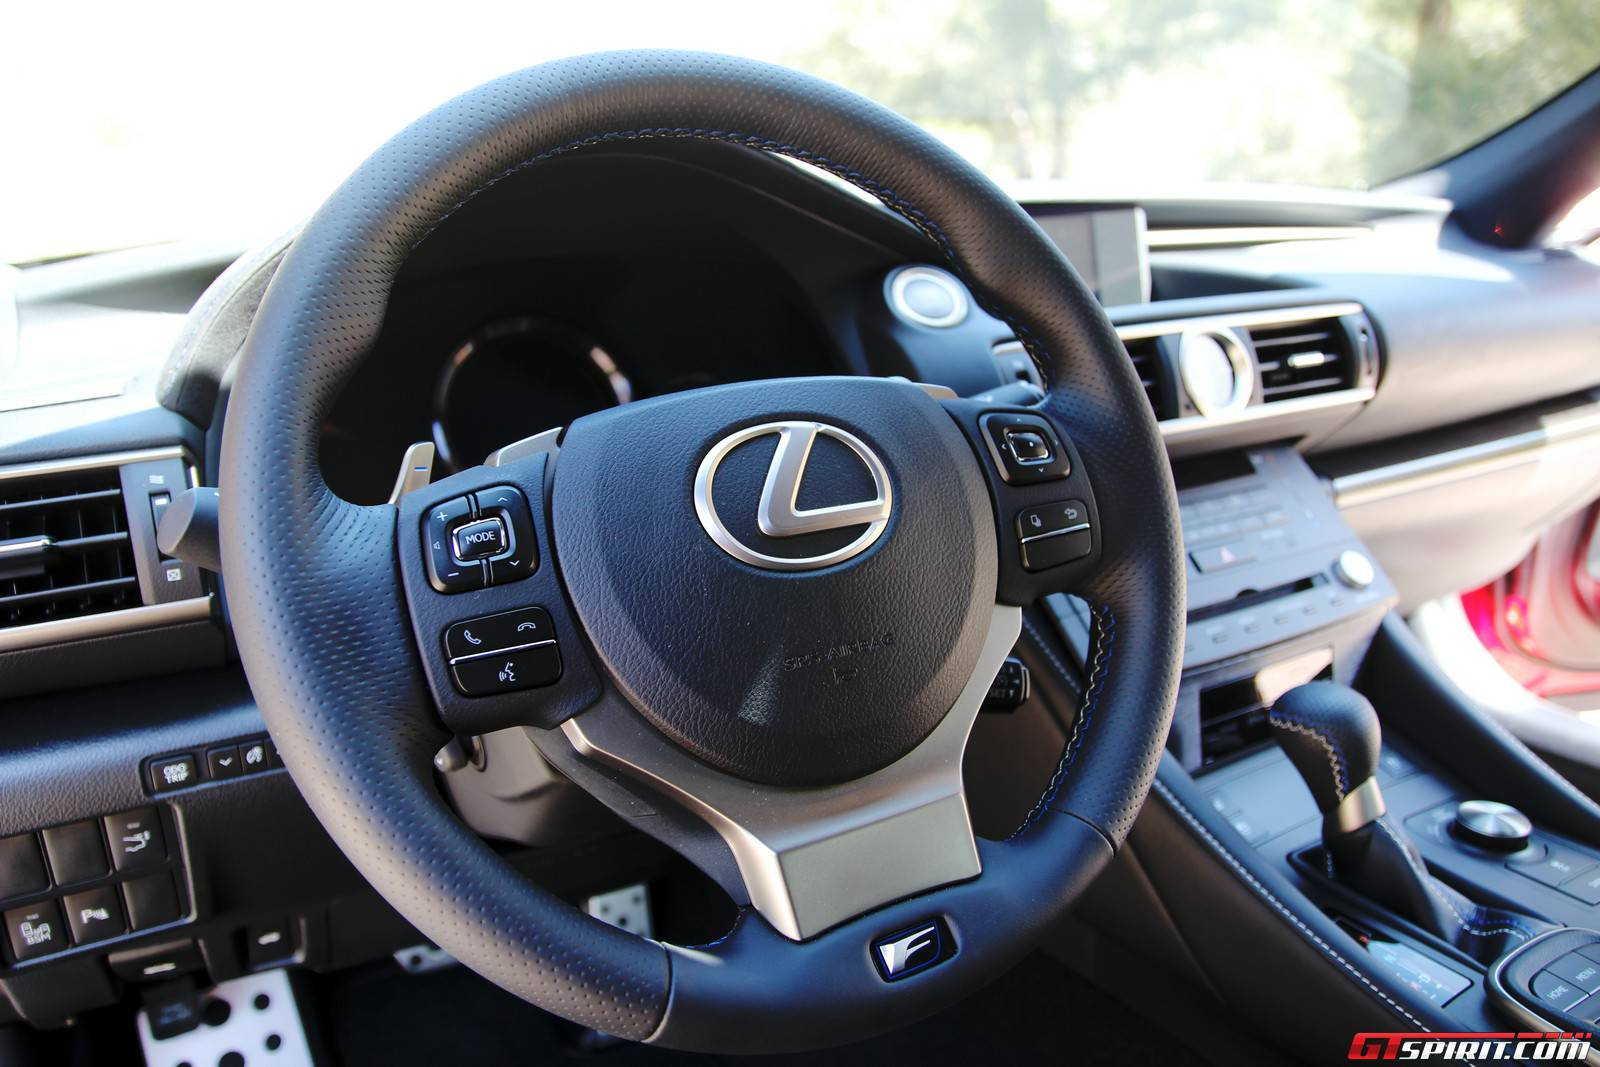 The All-NEW 2016 LEXUS RC F Is Here! Read The EXCLUSIVE Review Of This AGGRESSIVE BEAST! 7